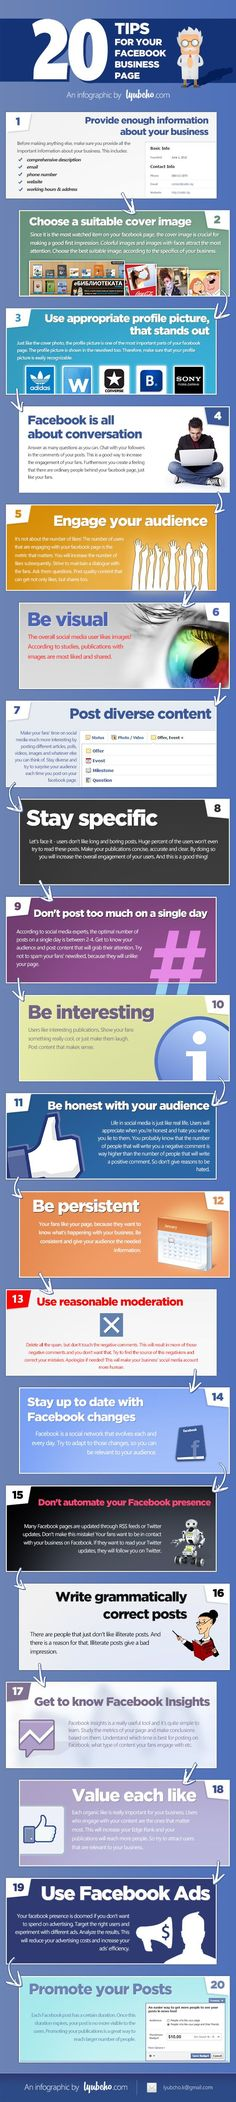 20 Facebook Tips to Enhance Your Page Presence [Infographic] http://socialmarketingwriting.com/20-facebook-tips-to-enhance-your-page-presence-infographic/